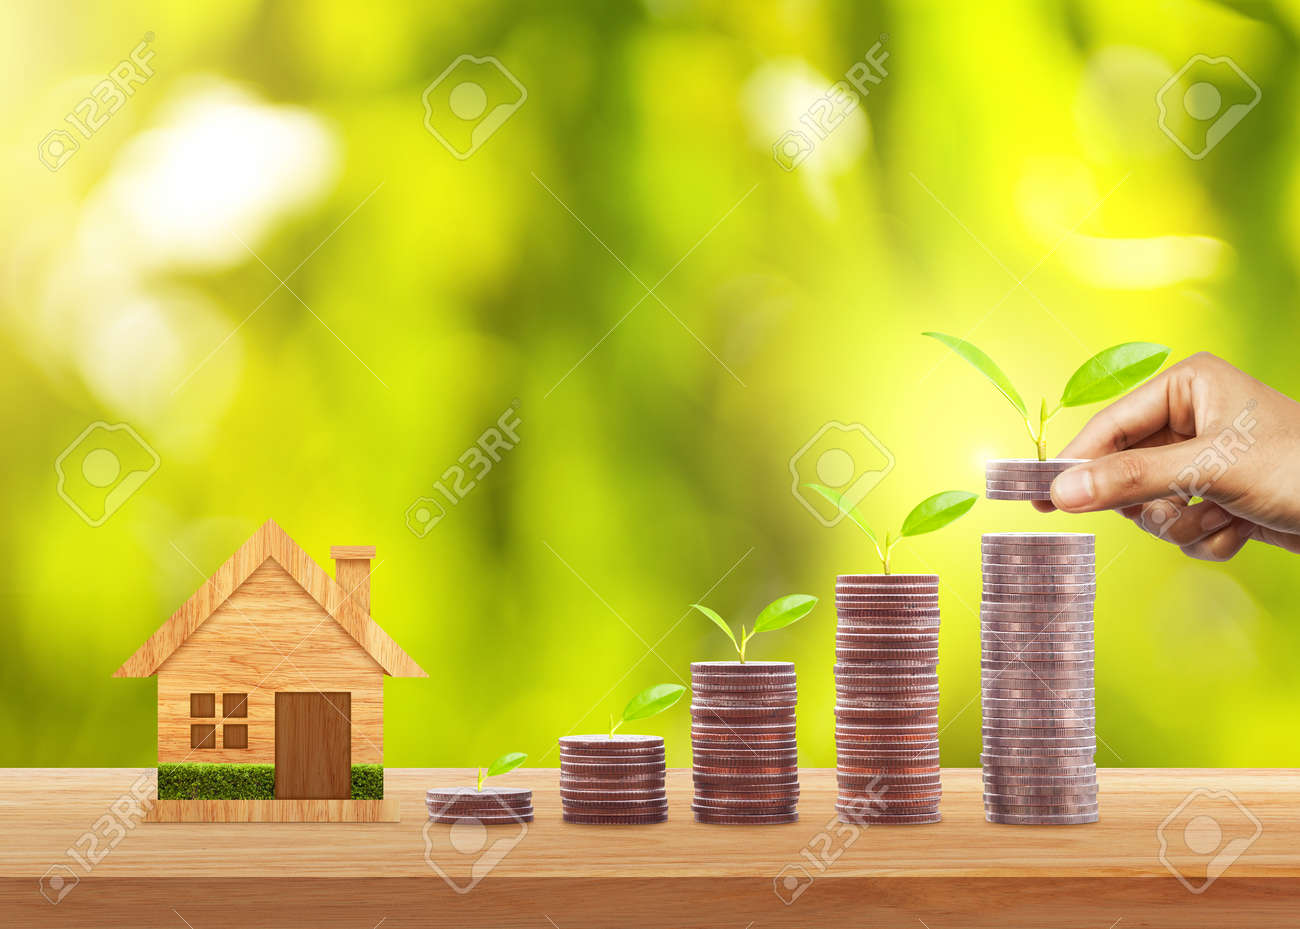 Hand putting money coins to stack of coins and growing plant on row of coin money for finance and banking. Investment and saving concept - 87155403